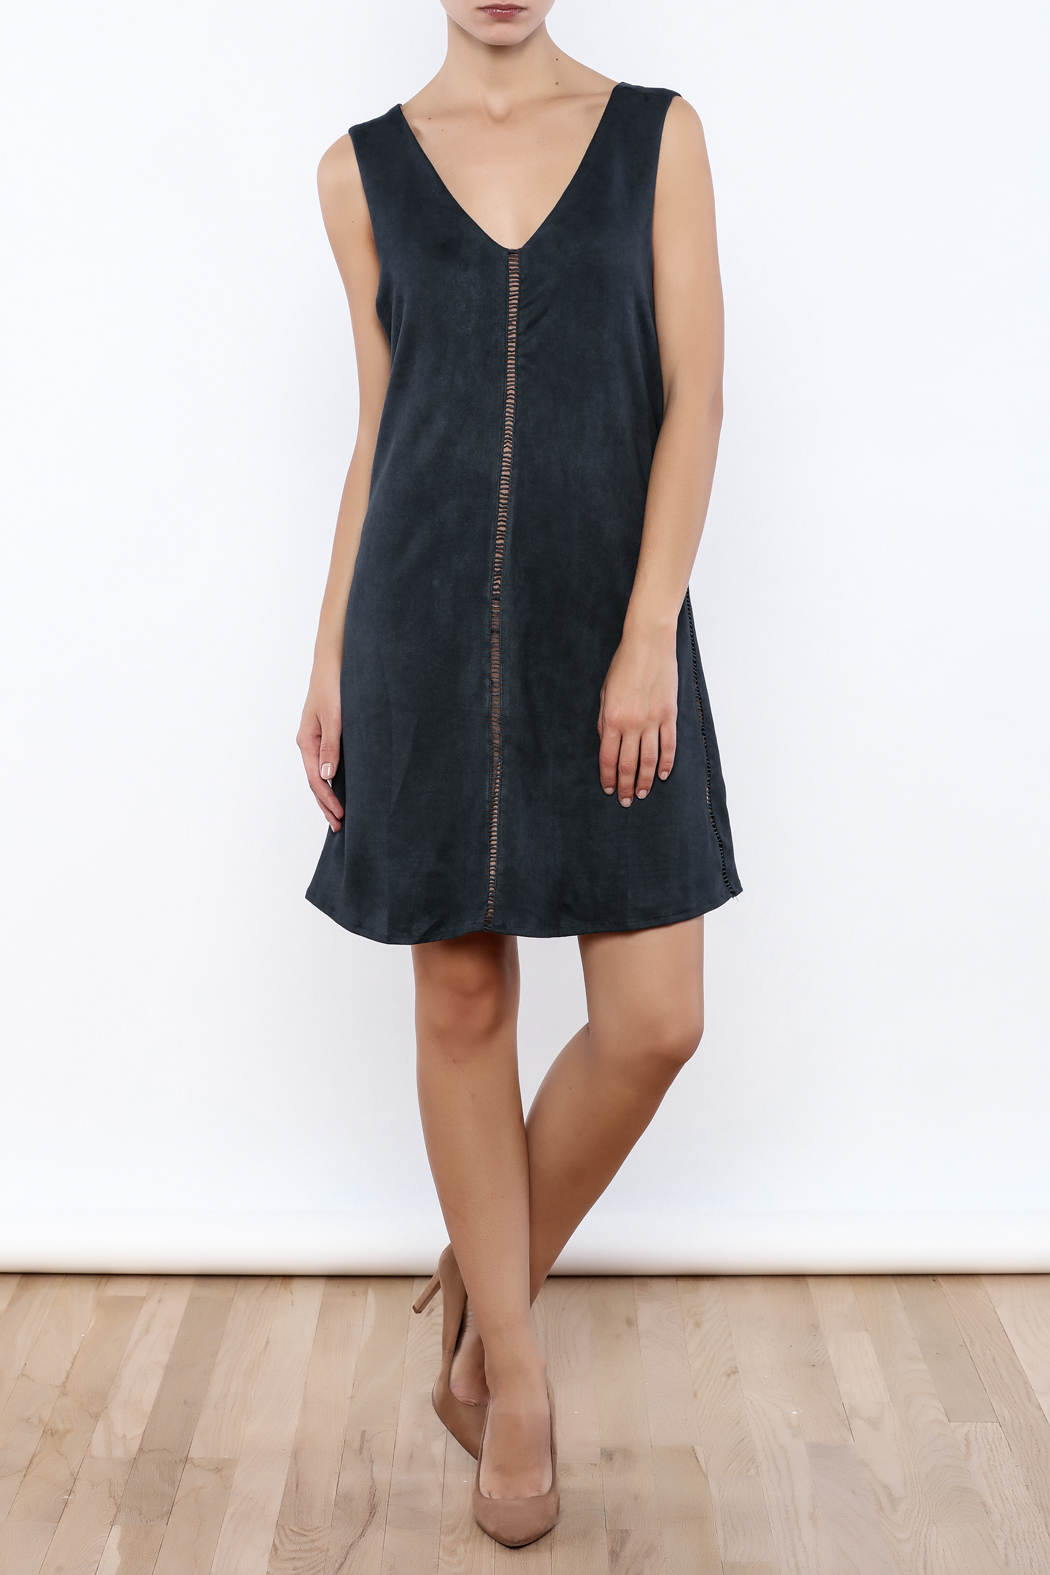 Miilla Sleeveless Faux Suede Dress - Front Full Image